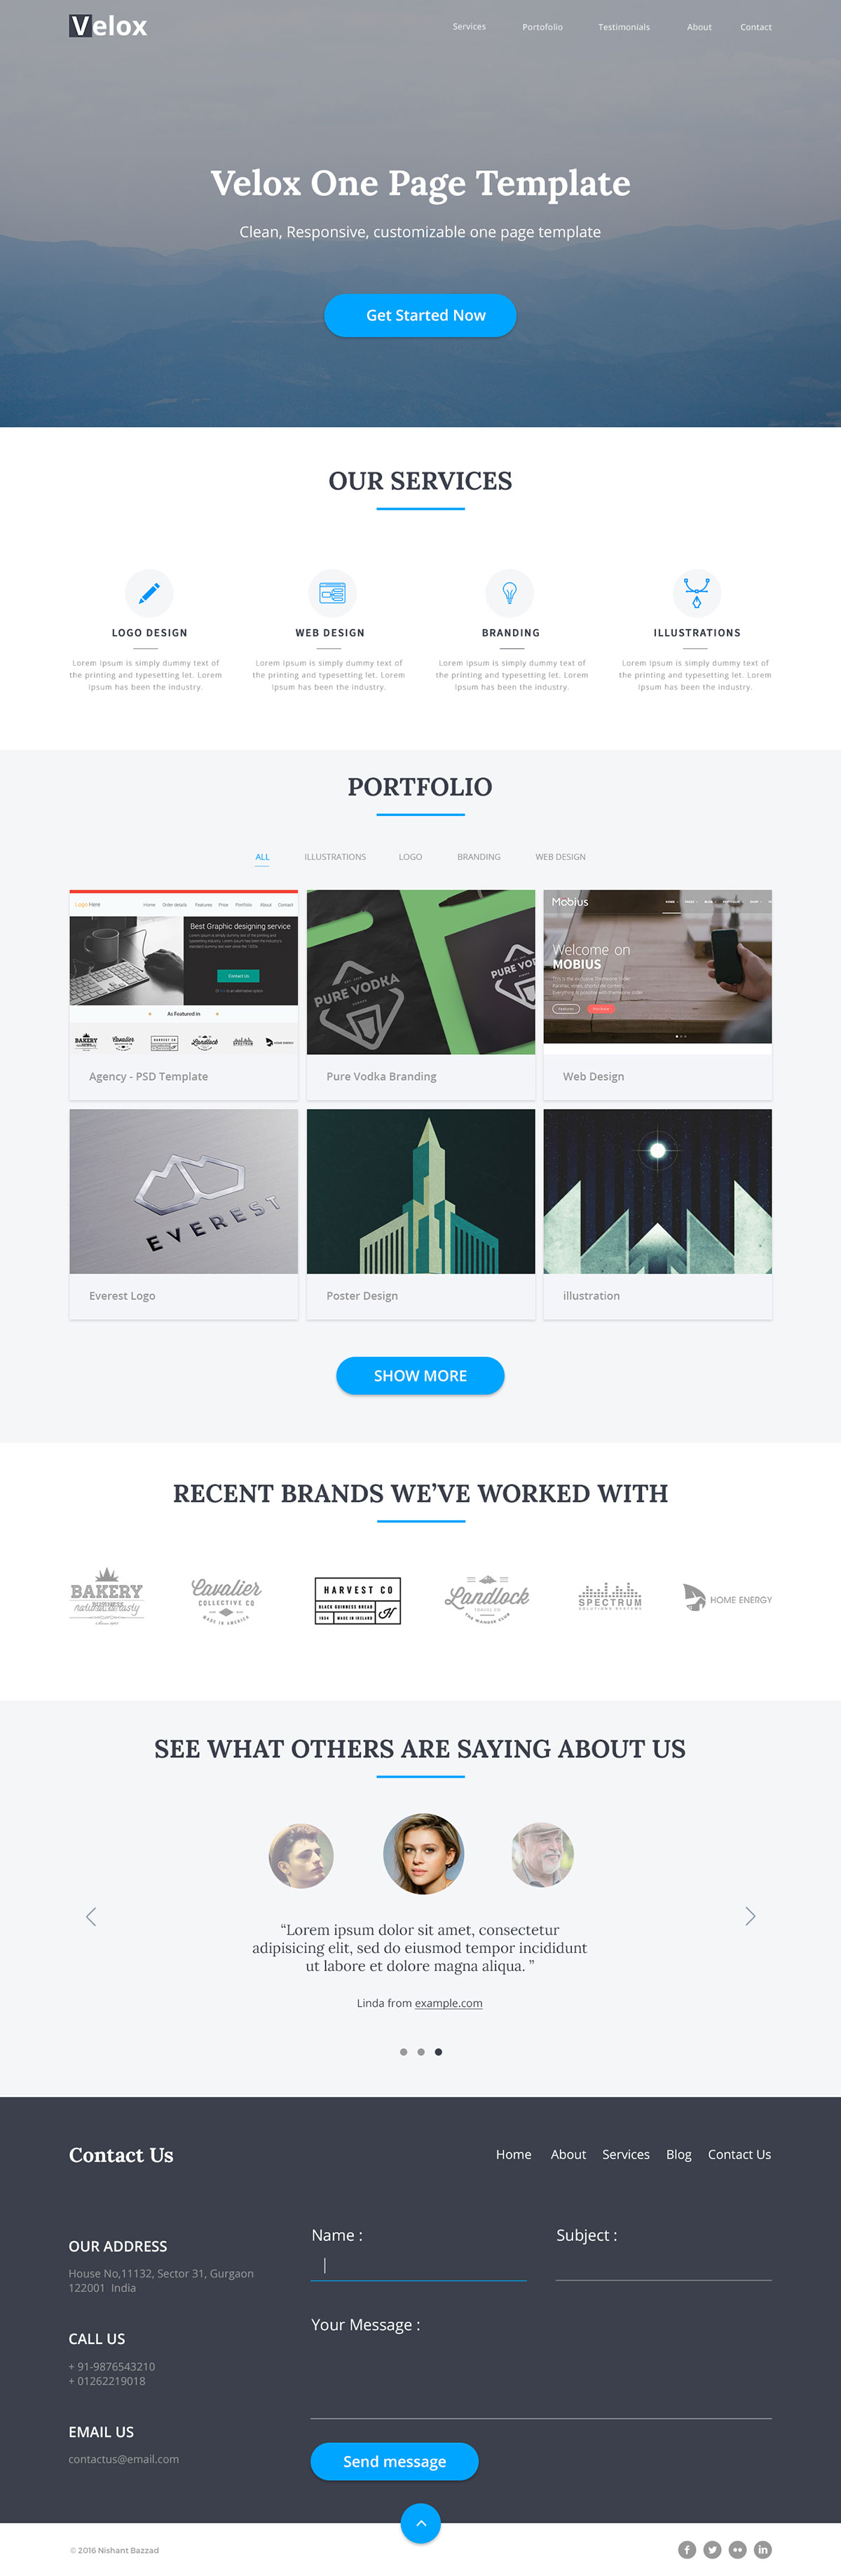 Velox - One Page Free HTML Template | Free HTML5 Templates